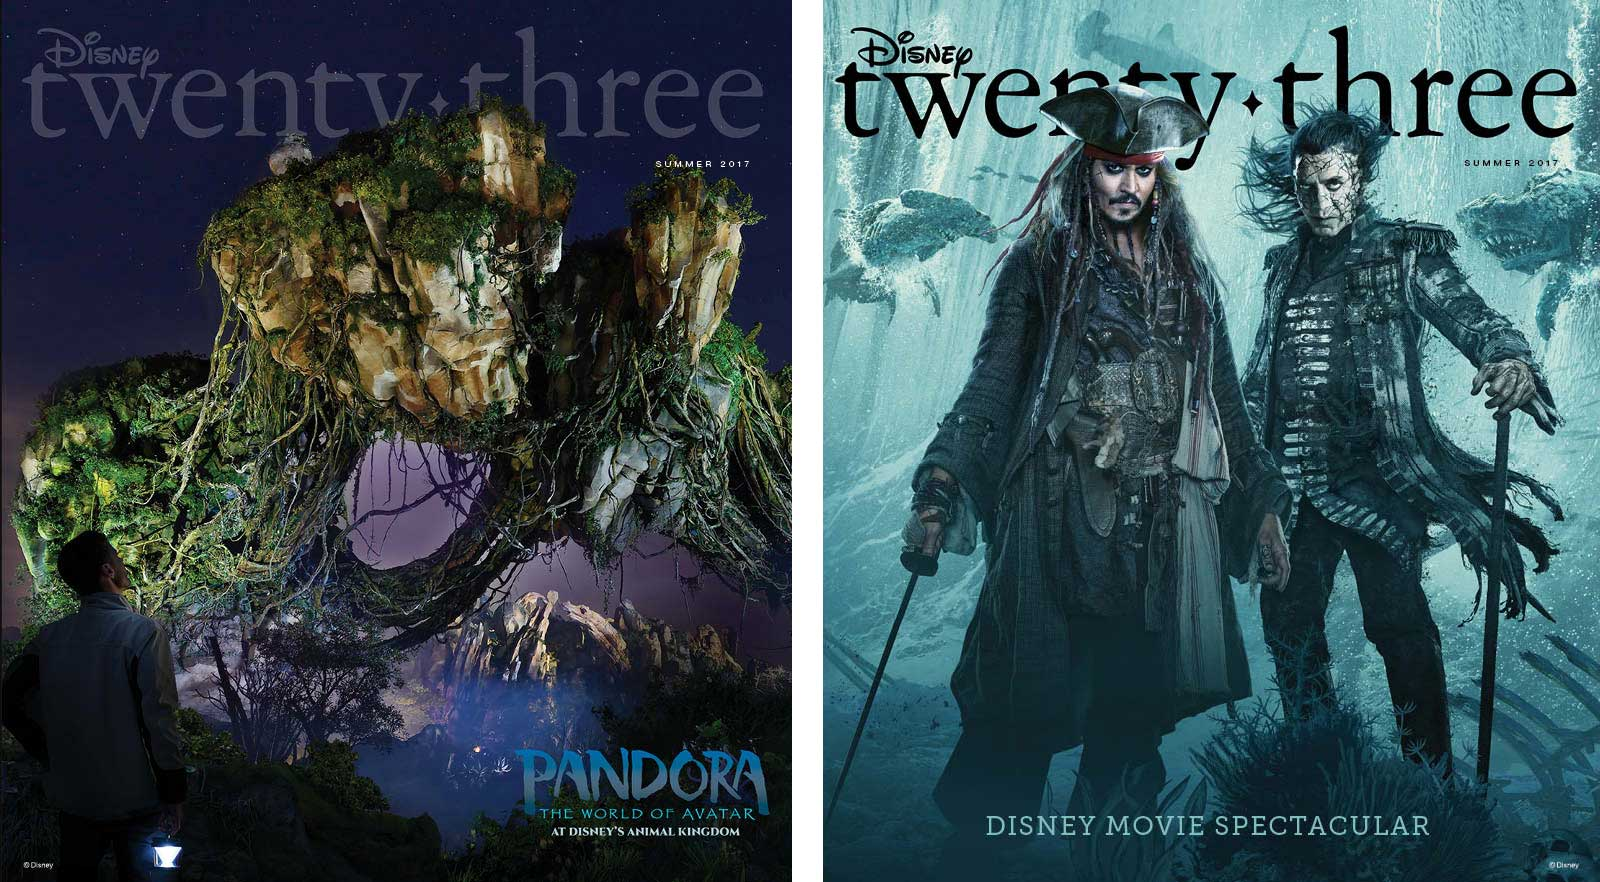 D23-Summer 2017 Covers - Pandora & Pirates